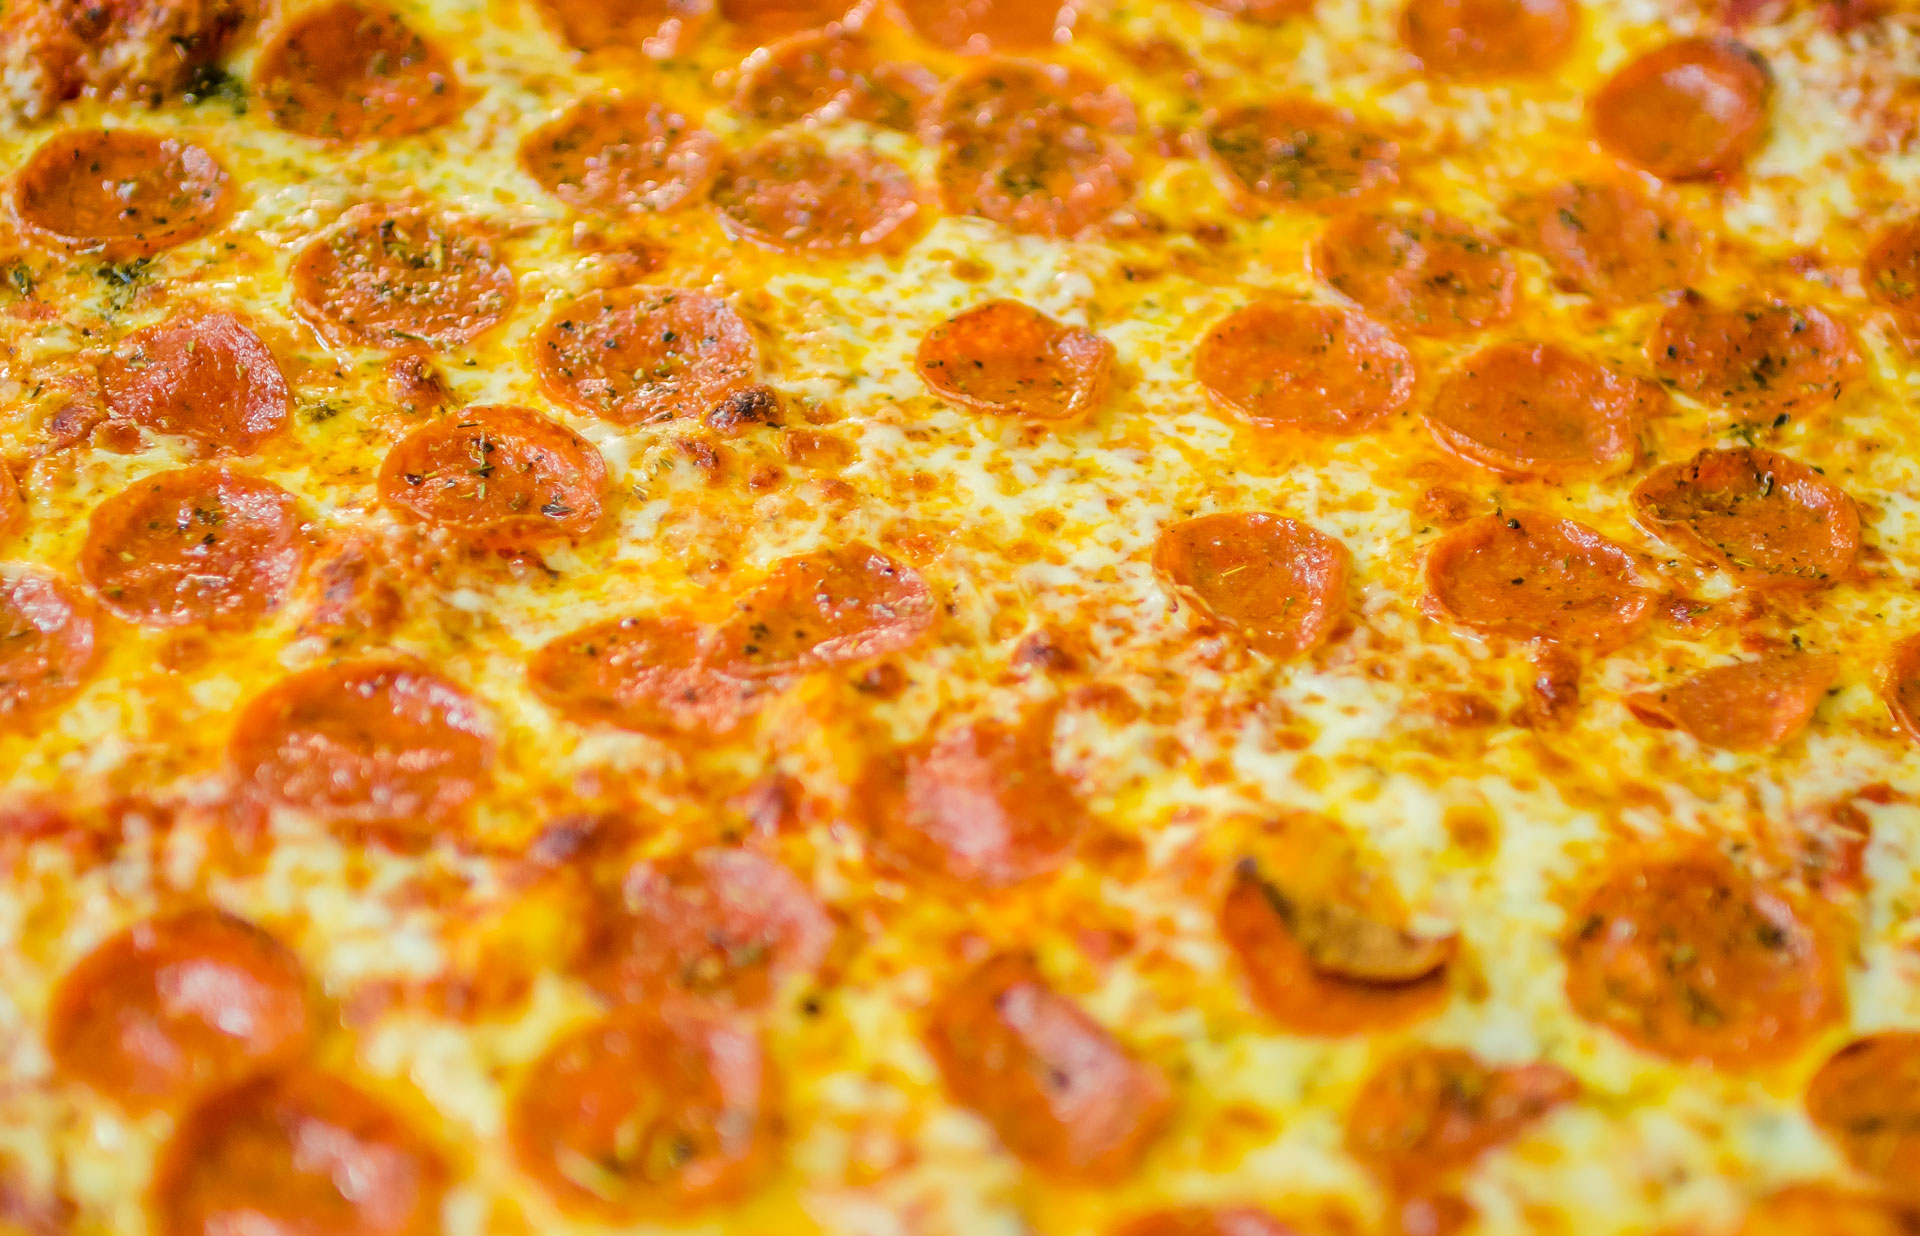 Whether you like pizza, chicken wings or cheese fries, we use only the freshest ingredients and make everything from scratch. From roasting vegetables for our dipping sauces, to making fresh dough each day, we put extra care into our cooking. Everything you see is available for delivery, so order online today!